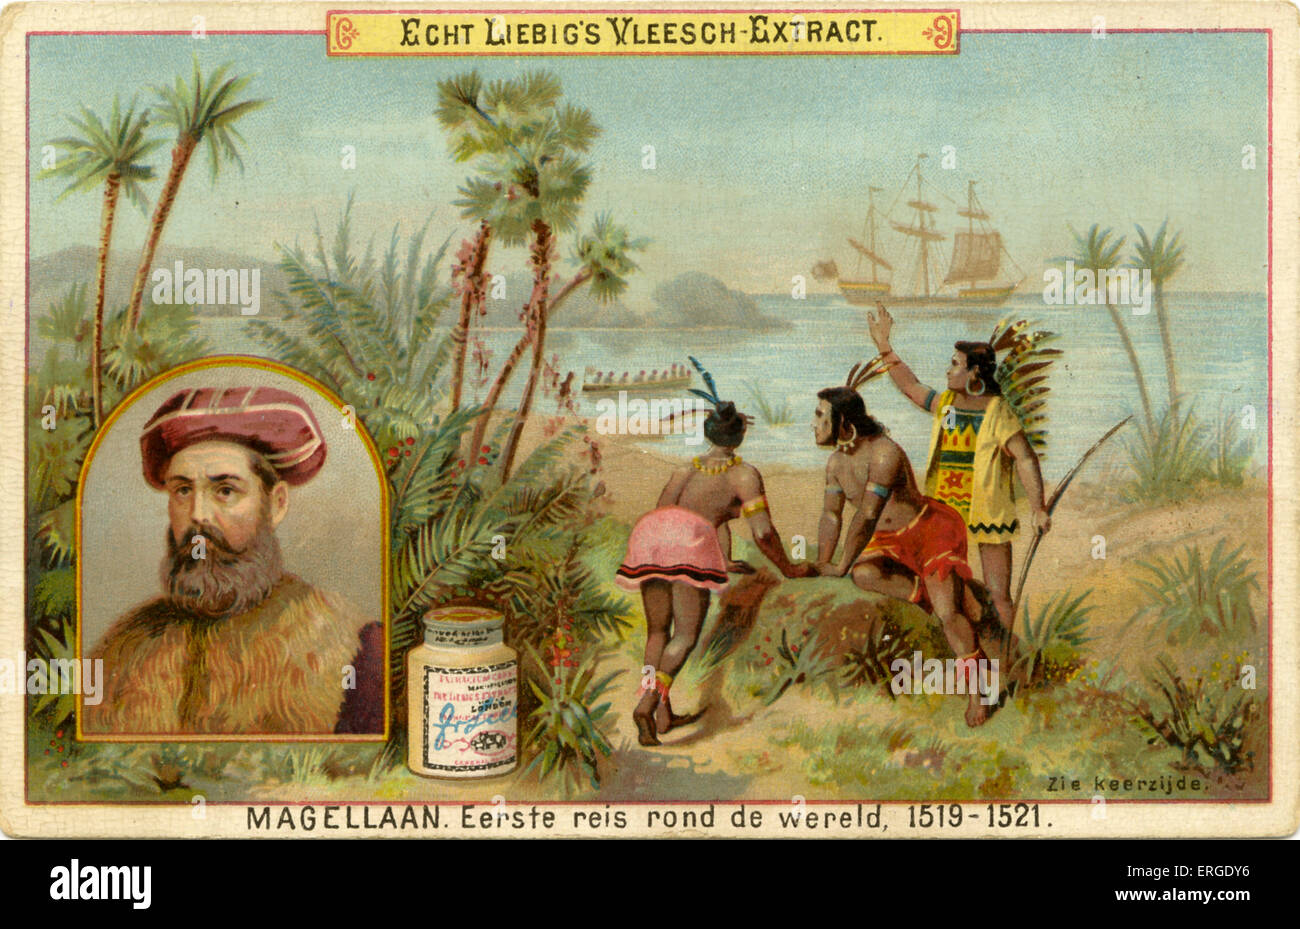 Magellan 's first voyage around the world, 1519- 1521. Published in 1891. Liebig Company series of Dutch collectible - Stock Image